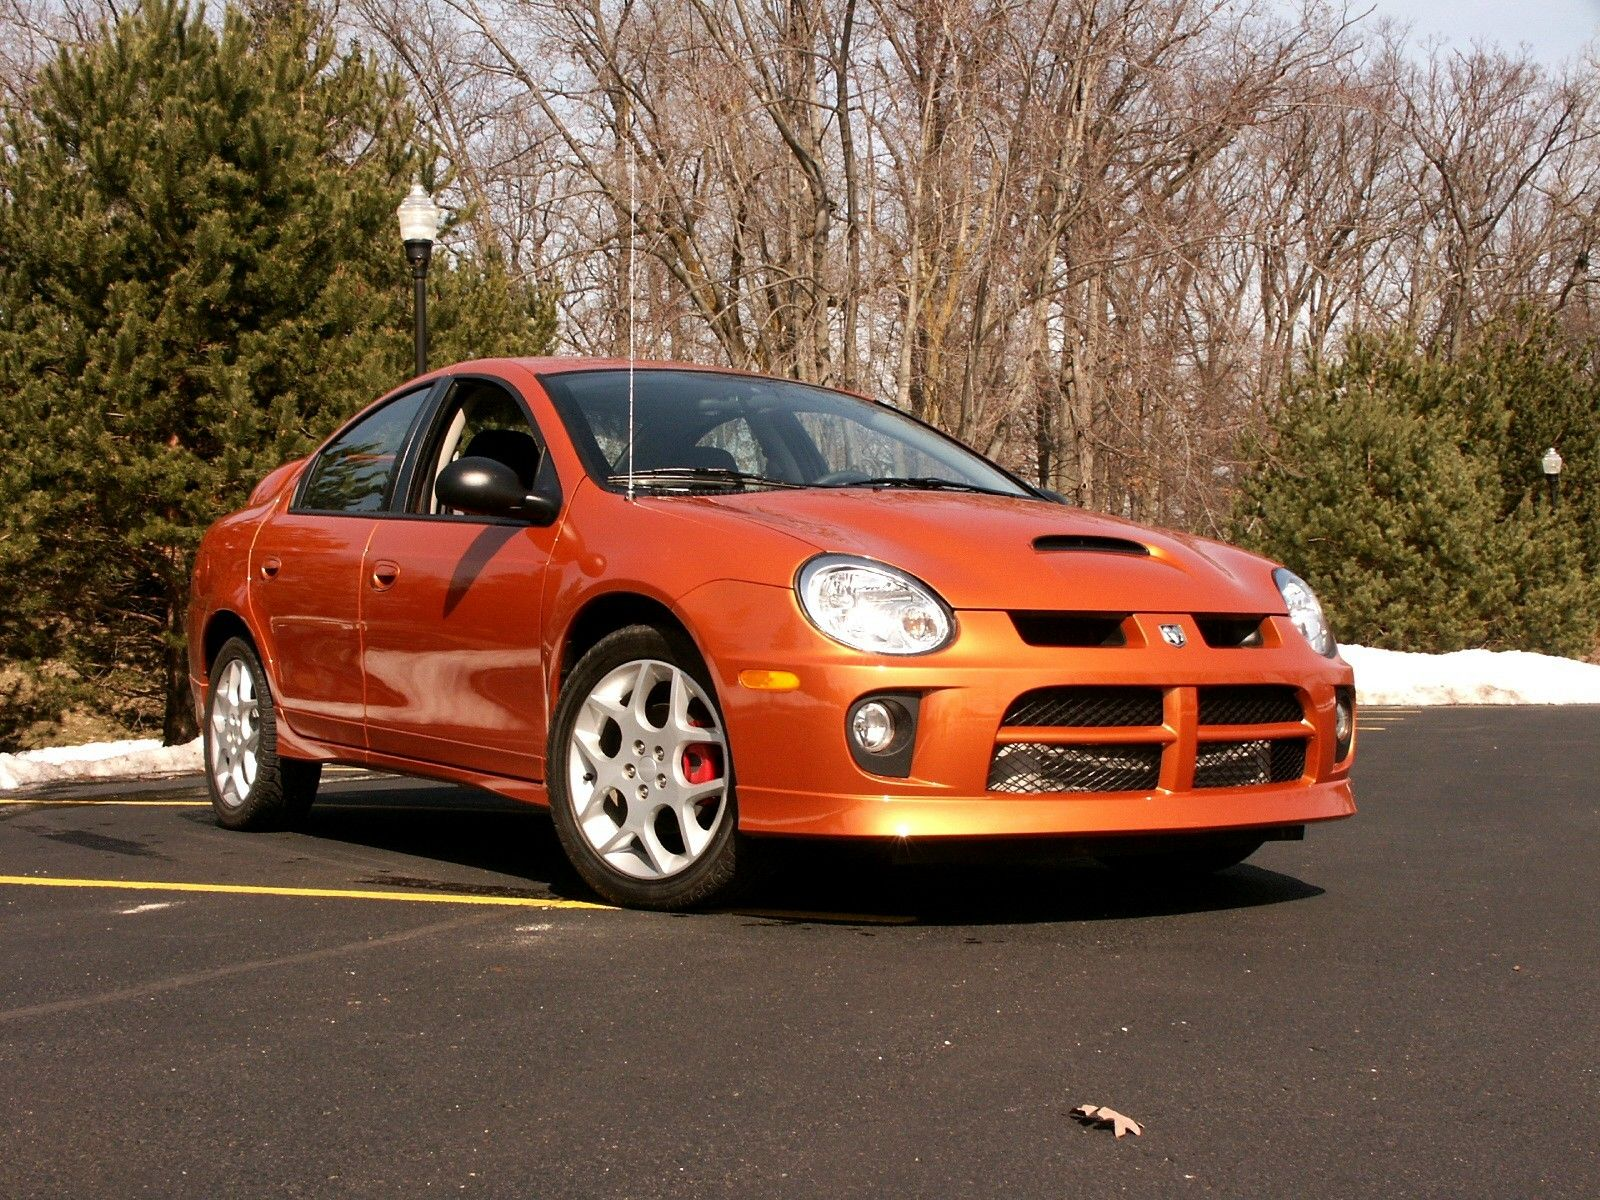 Orange Neon Affordable Sports Cars Manual Car Dodge